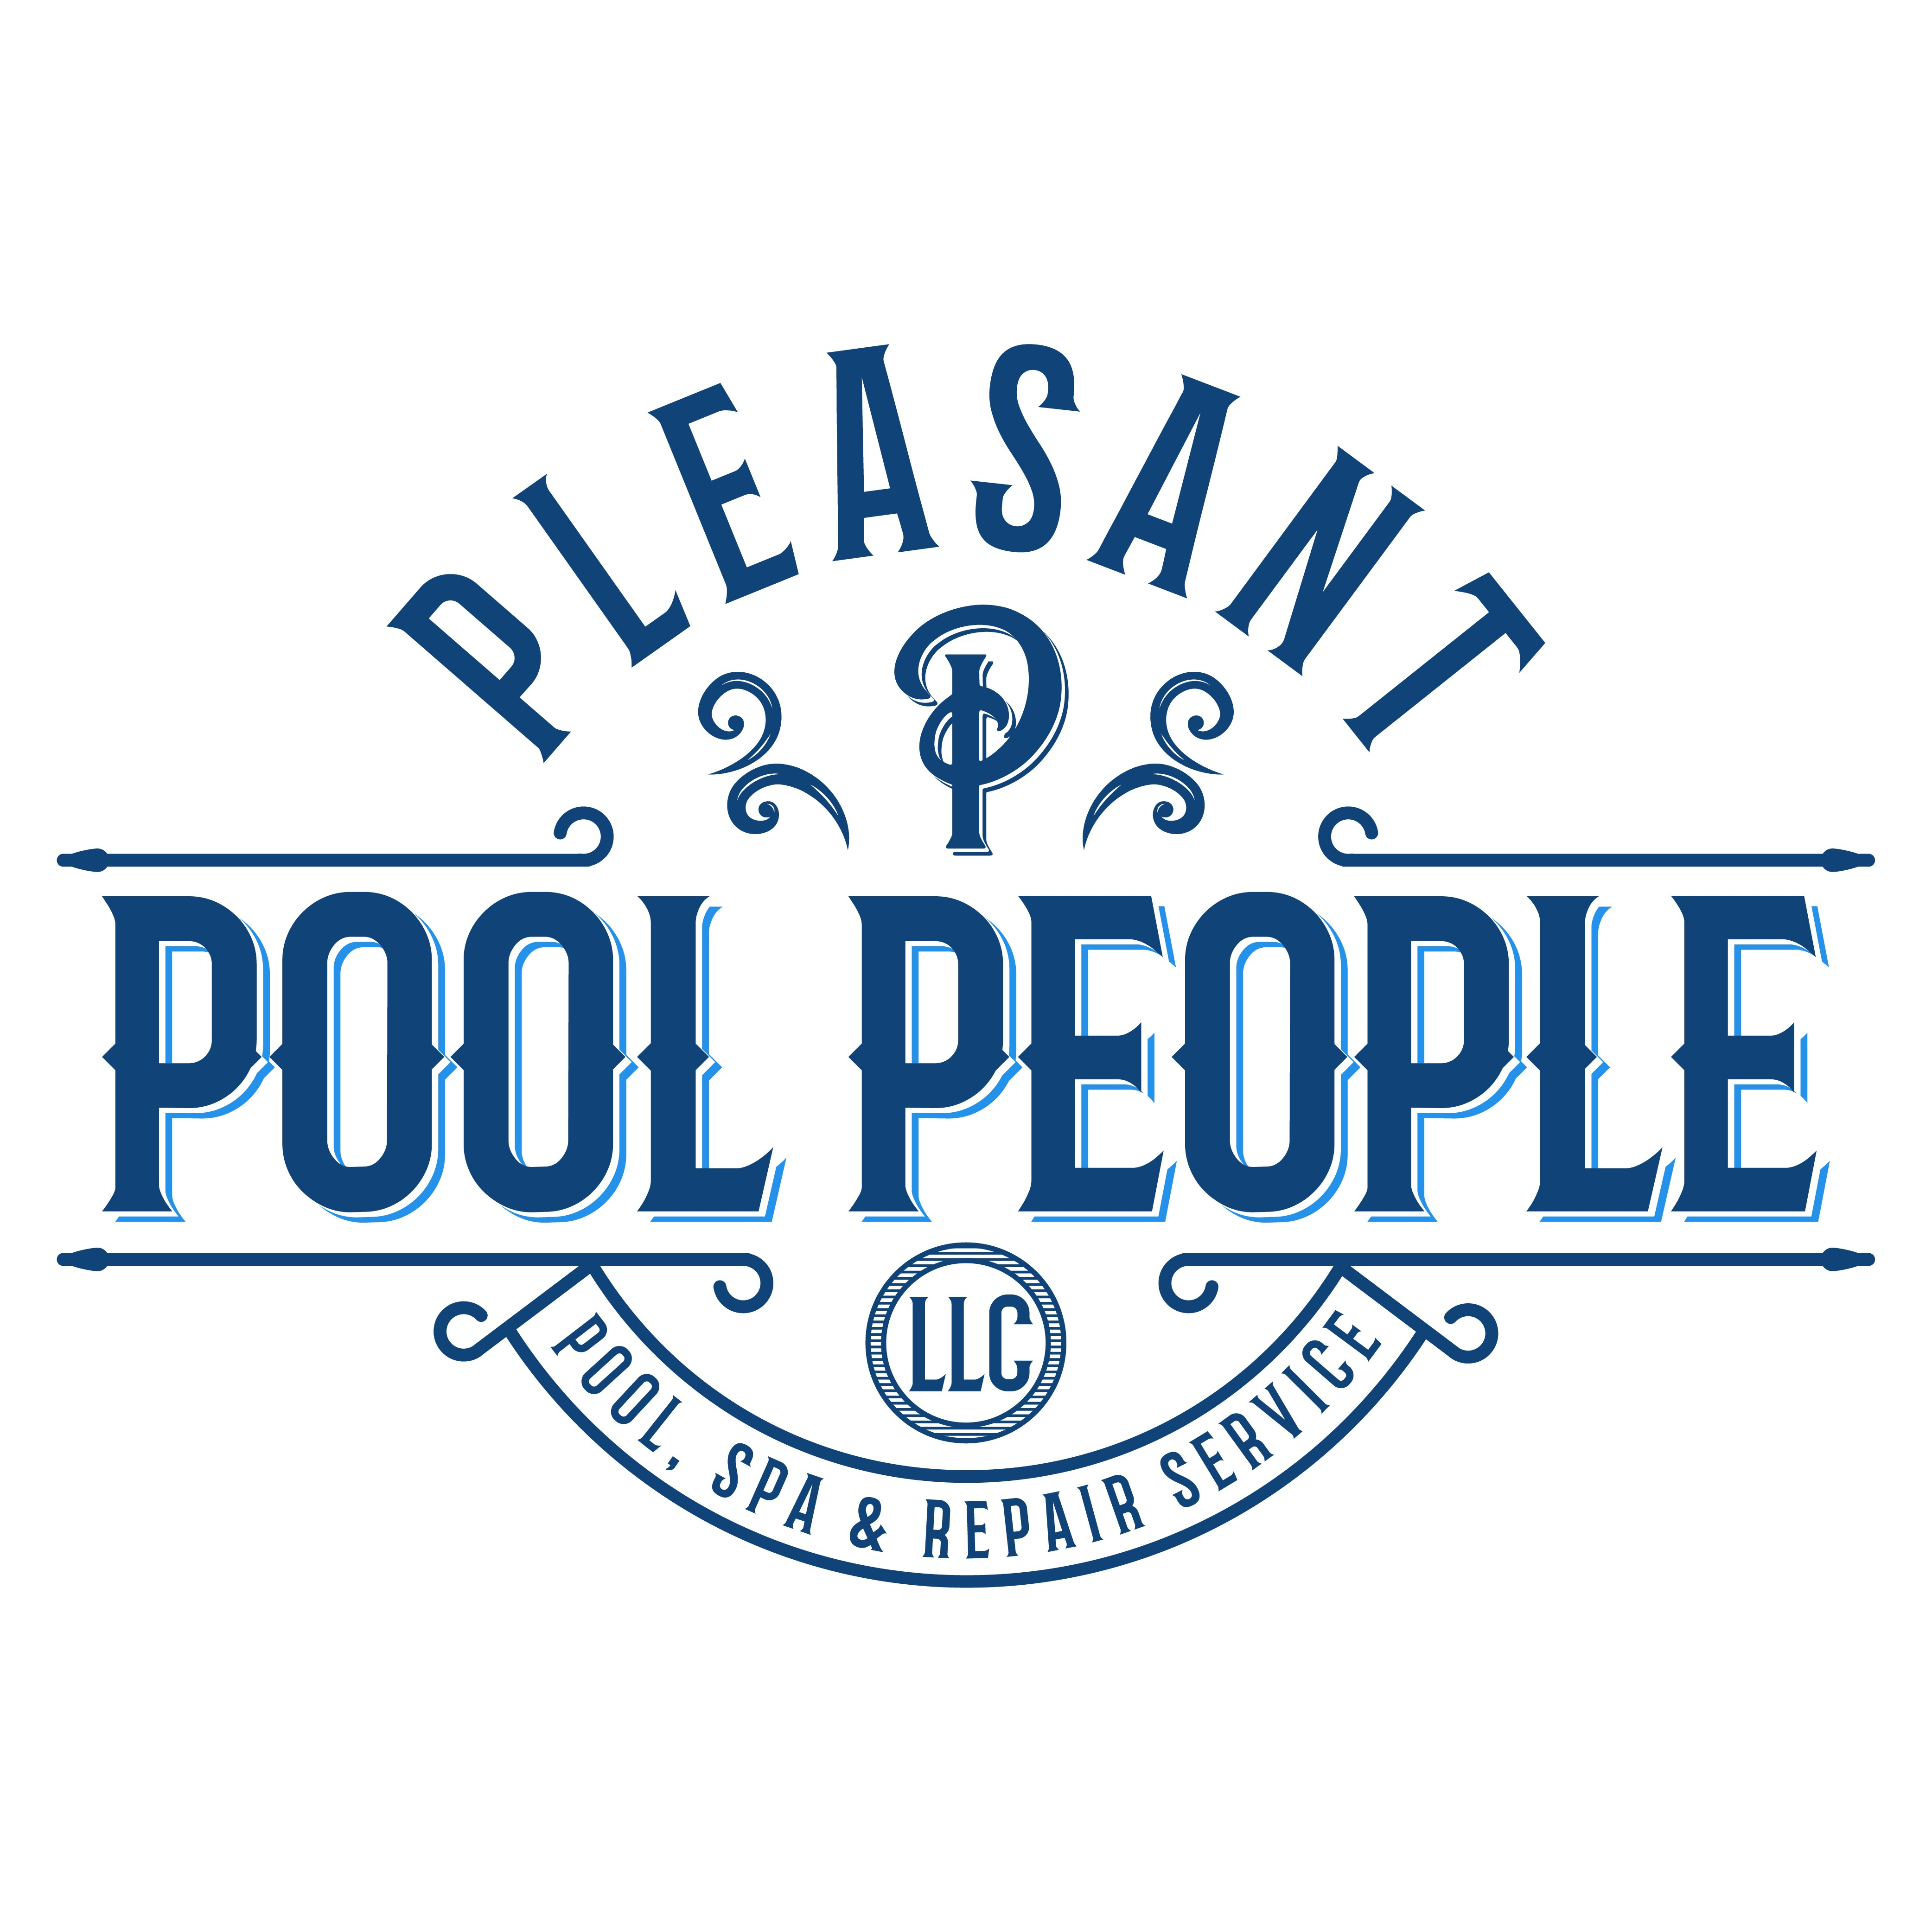 Pleasant Pool People, LLC need a new luxurious yet youthful logo